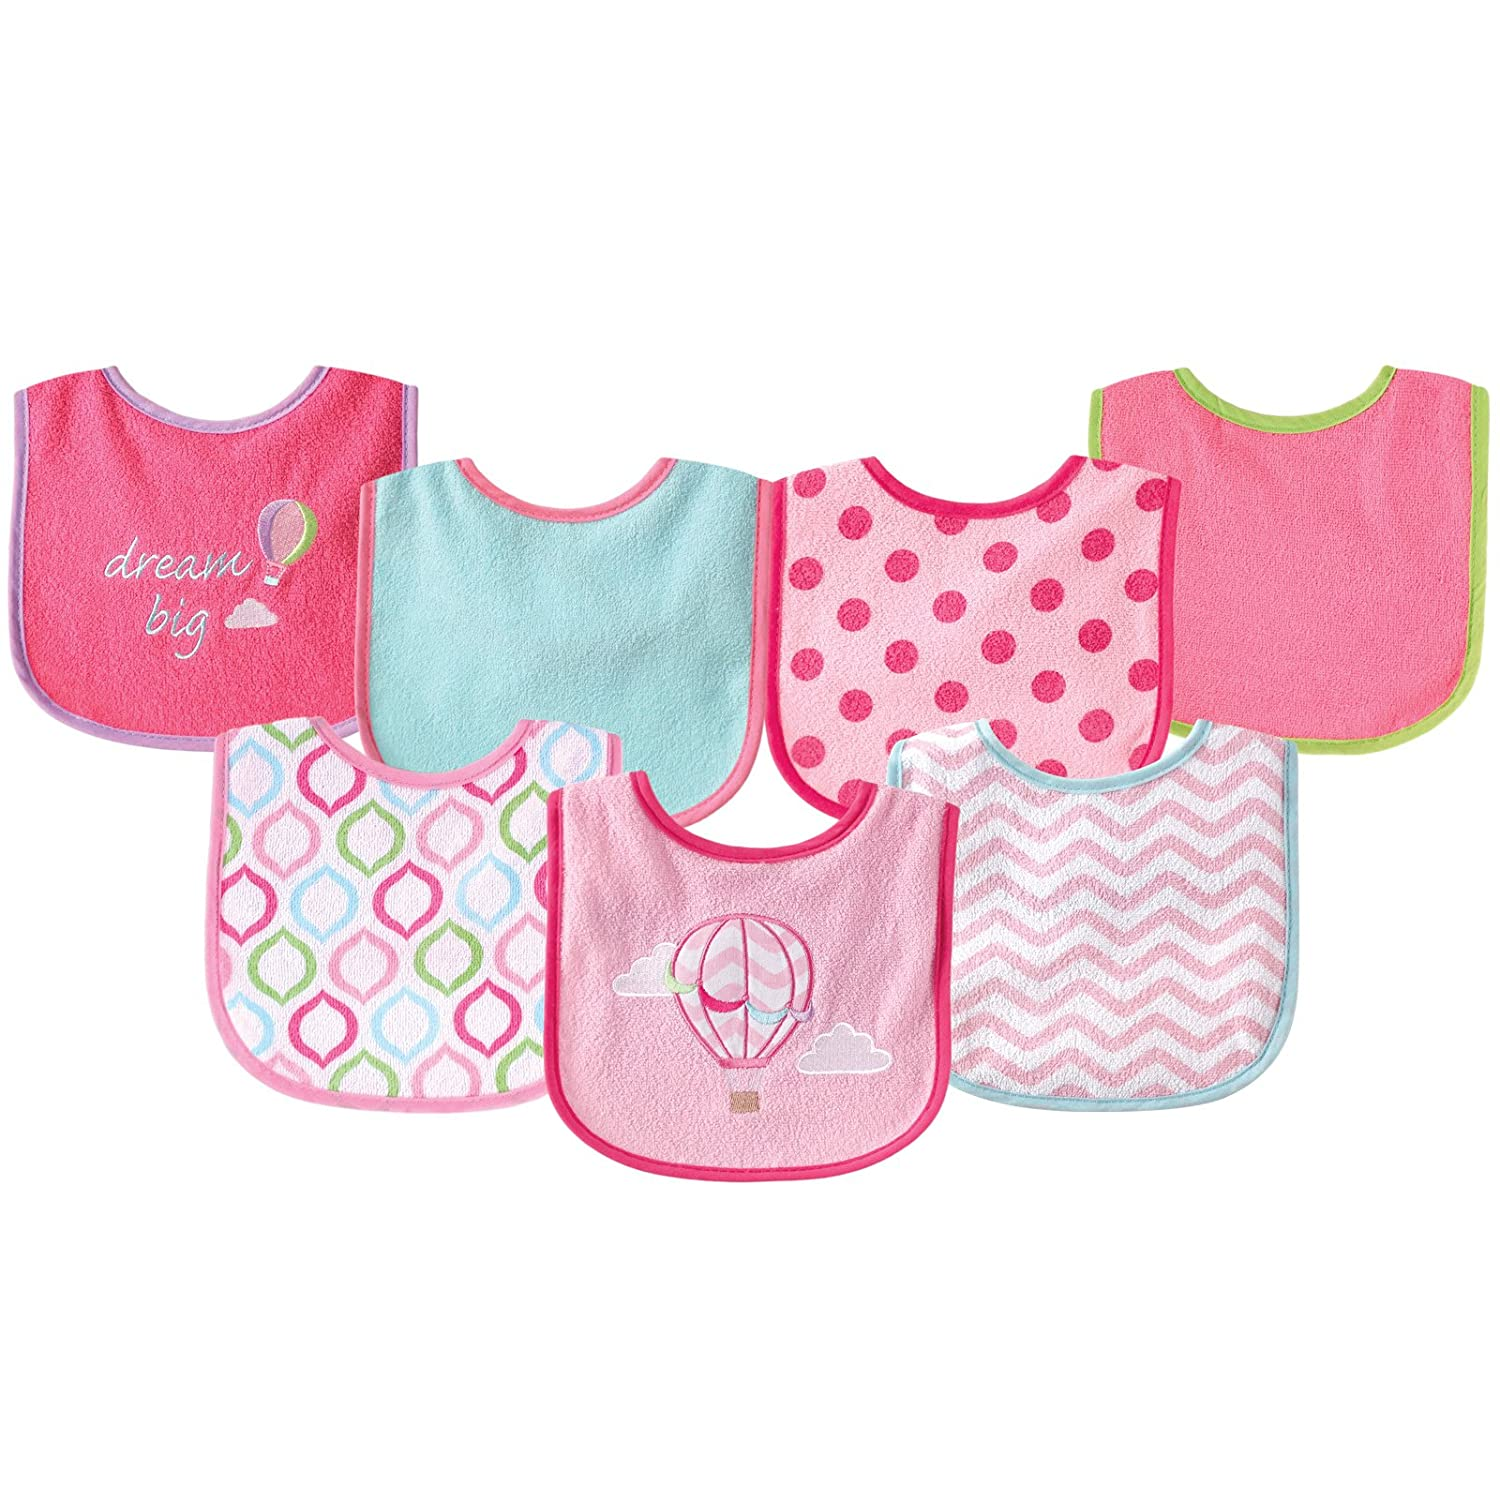 Luvable Friends 7 Piece Drooler Bibs with Waterproof Backing, Ladybug BabyVision 02375_Ladybug